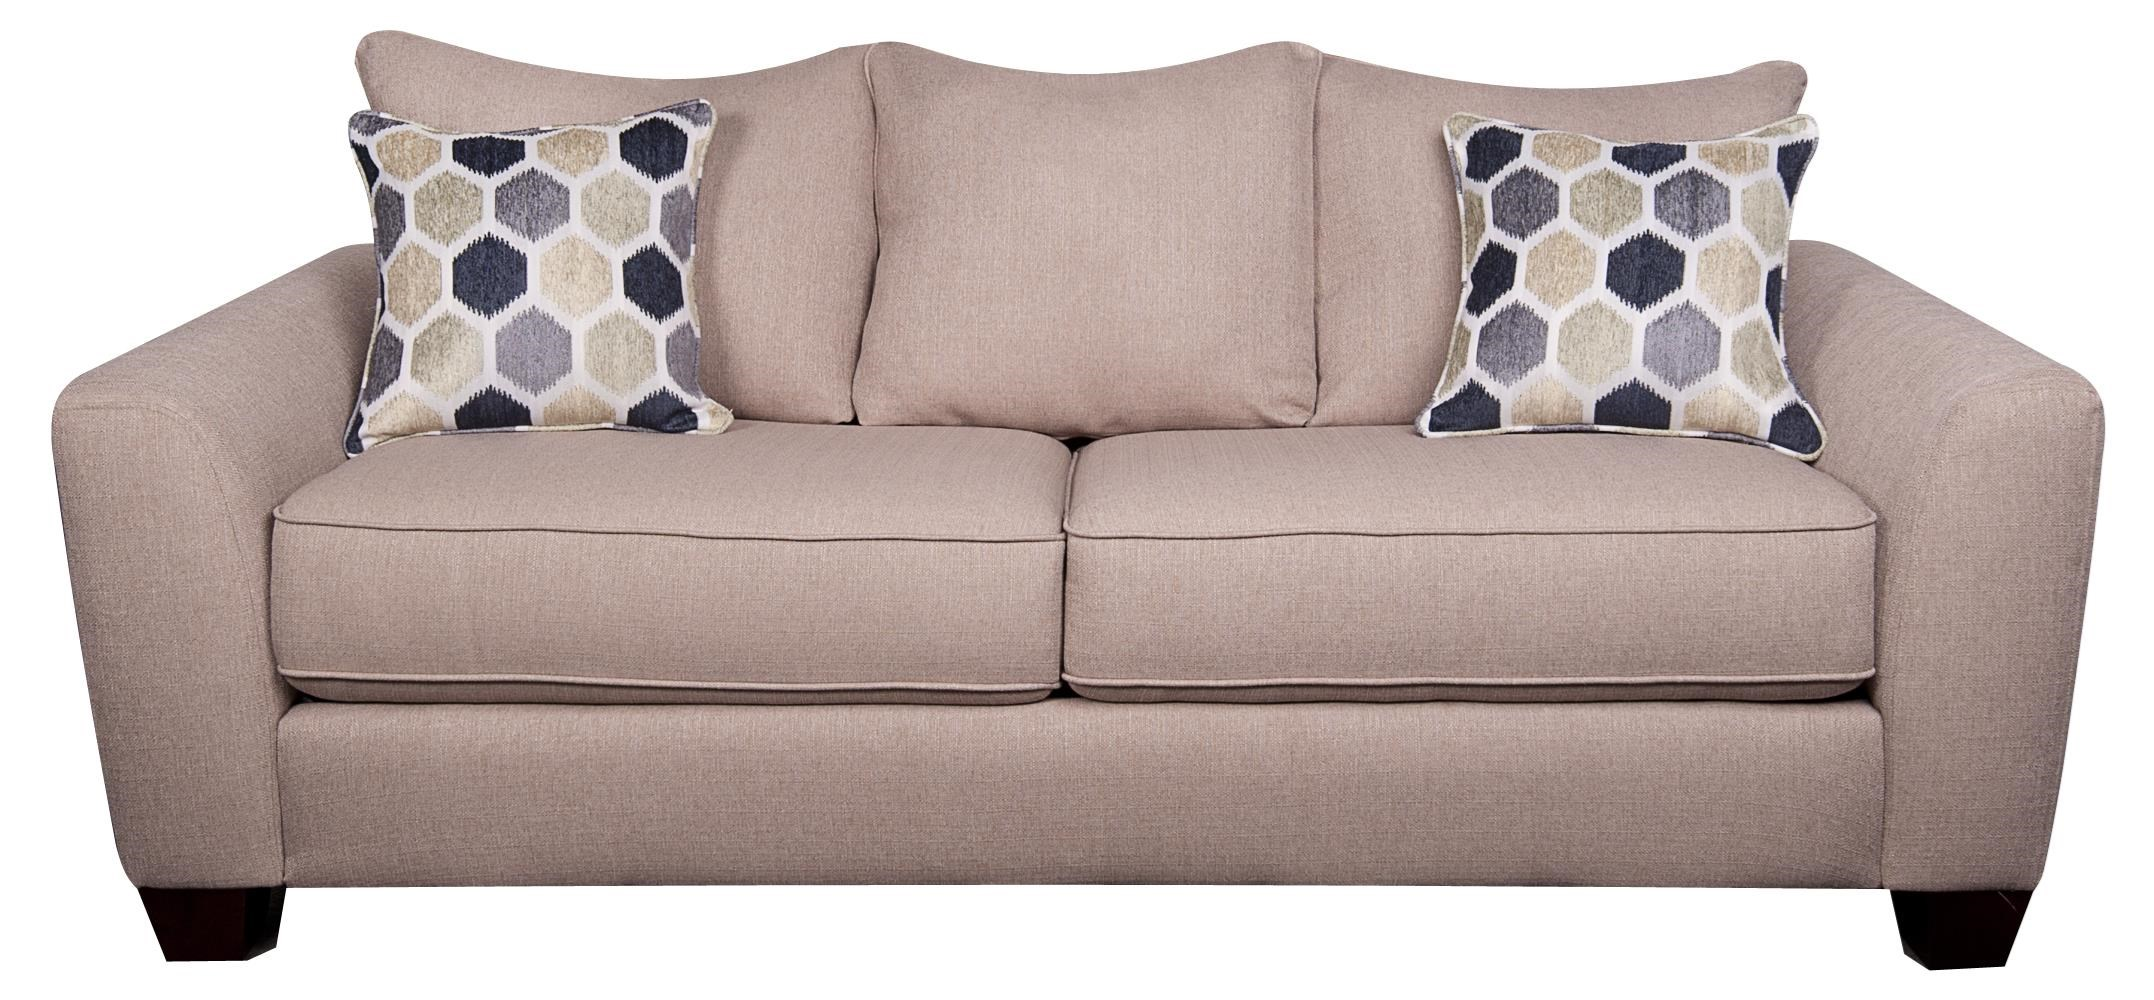 Morris Home Furnishings Remedy Remedy Sofa - Item Number: 859966043